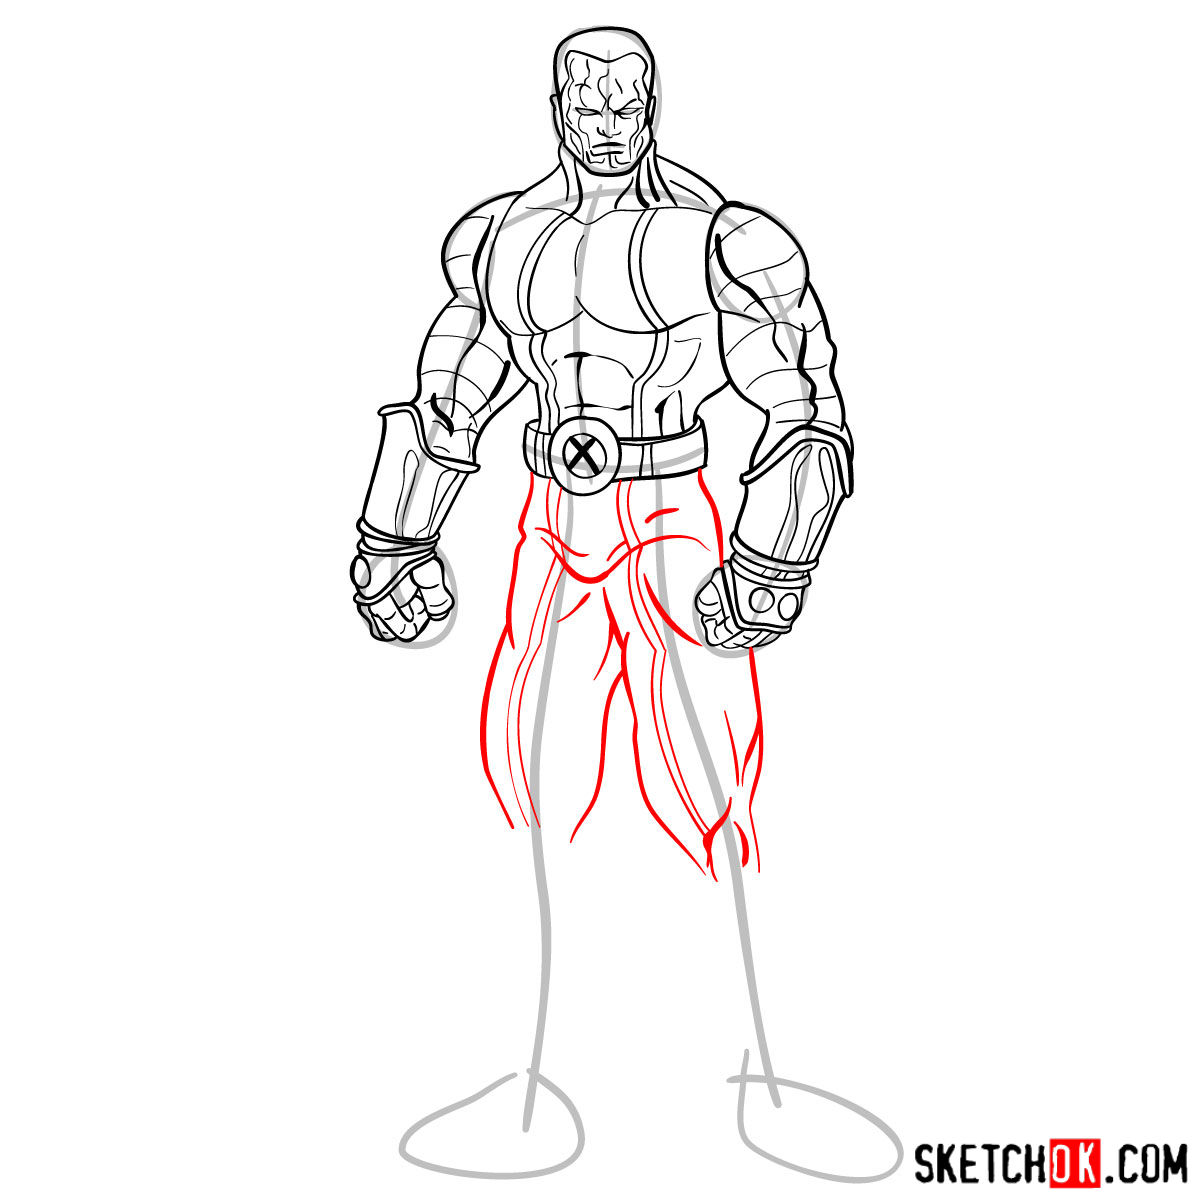 How to draw Colossus from Deadpool film and X-Men series - step 12